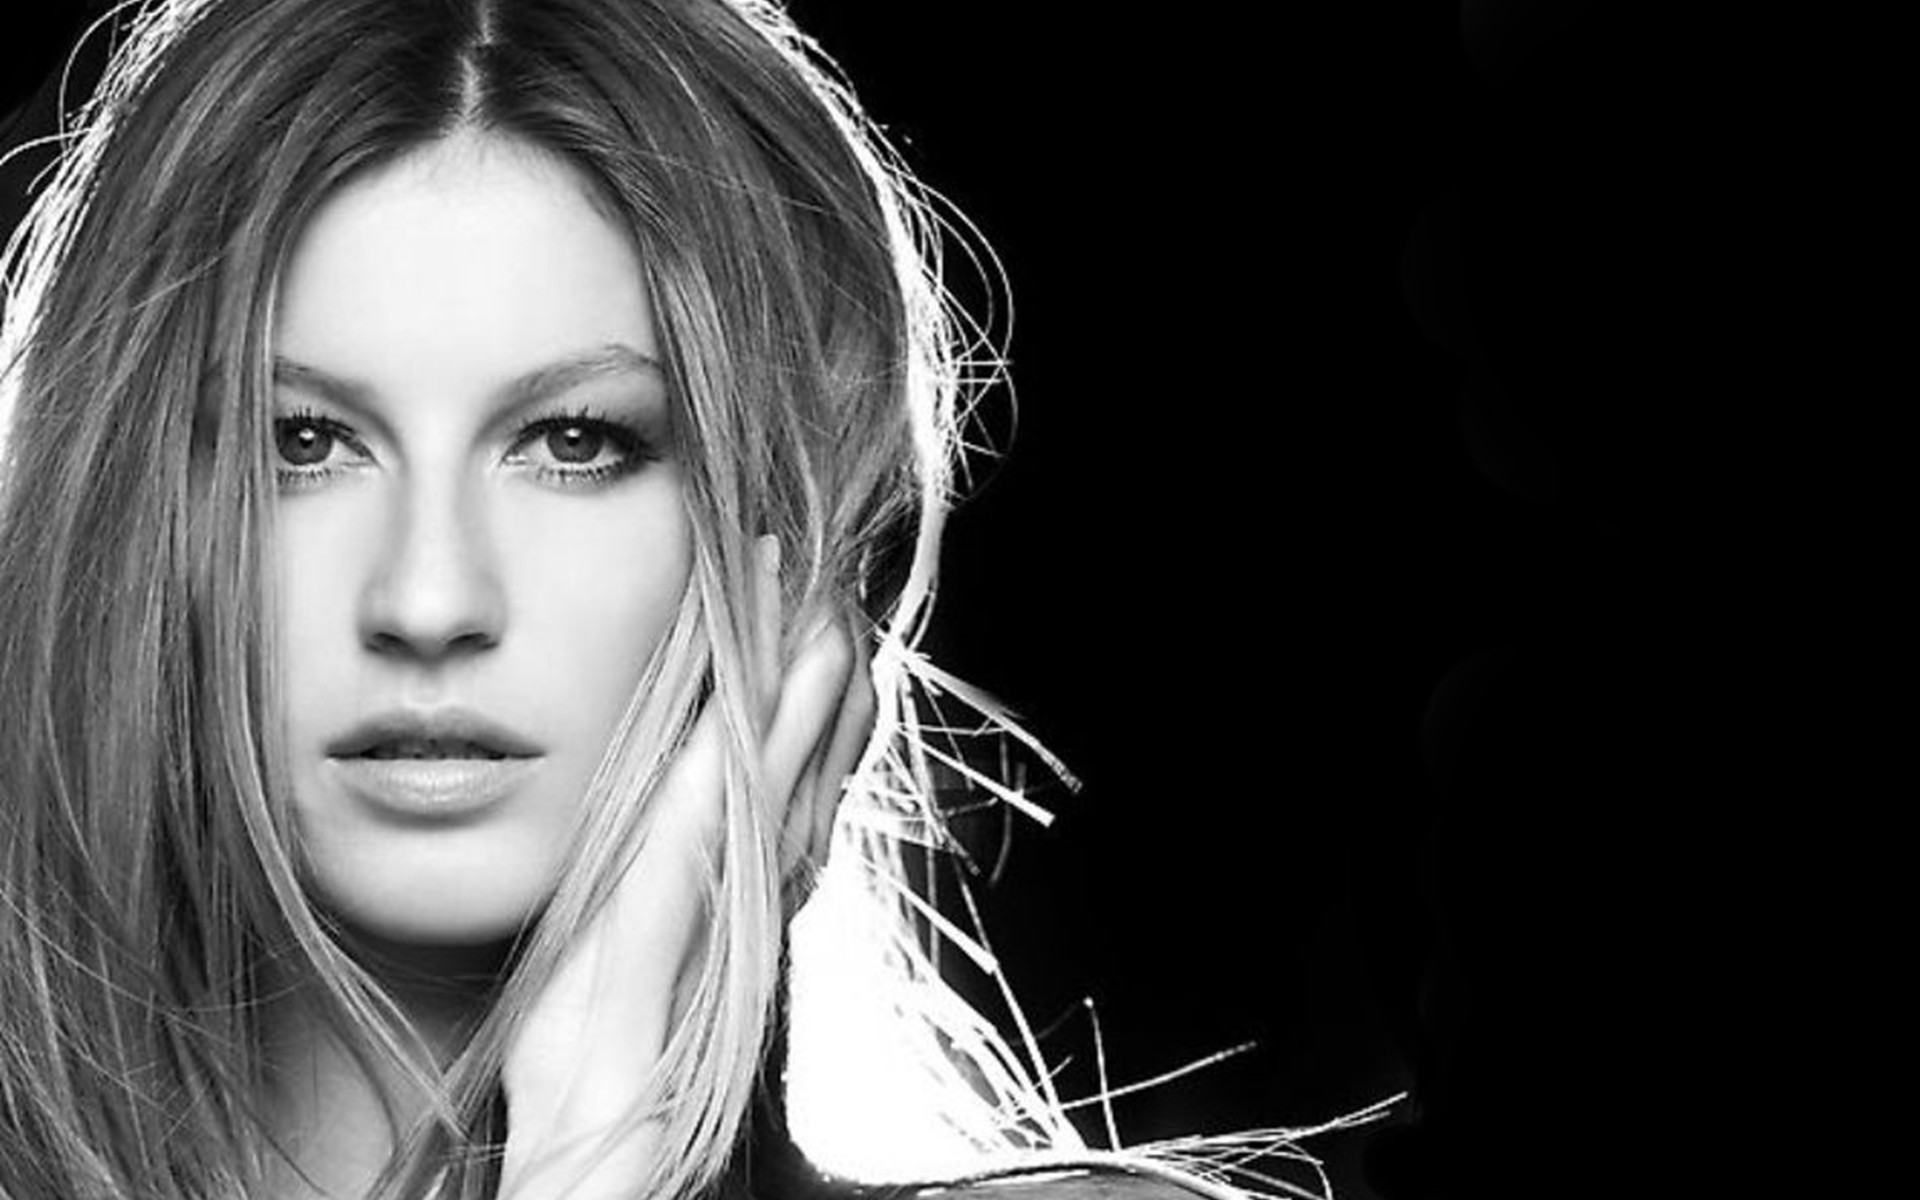 Gisele Bundchen Wallpapers High Resolution and Quality ... Gisele Bundchen